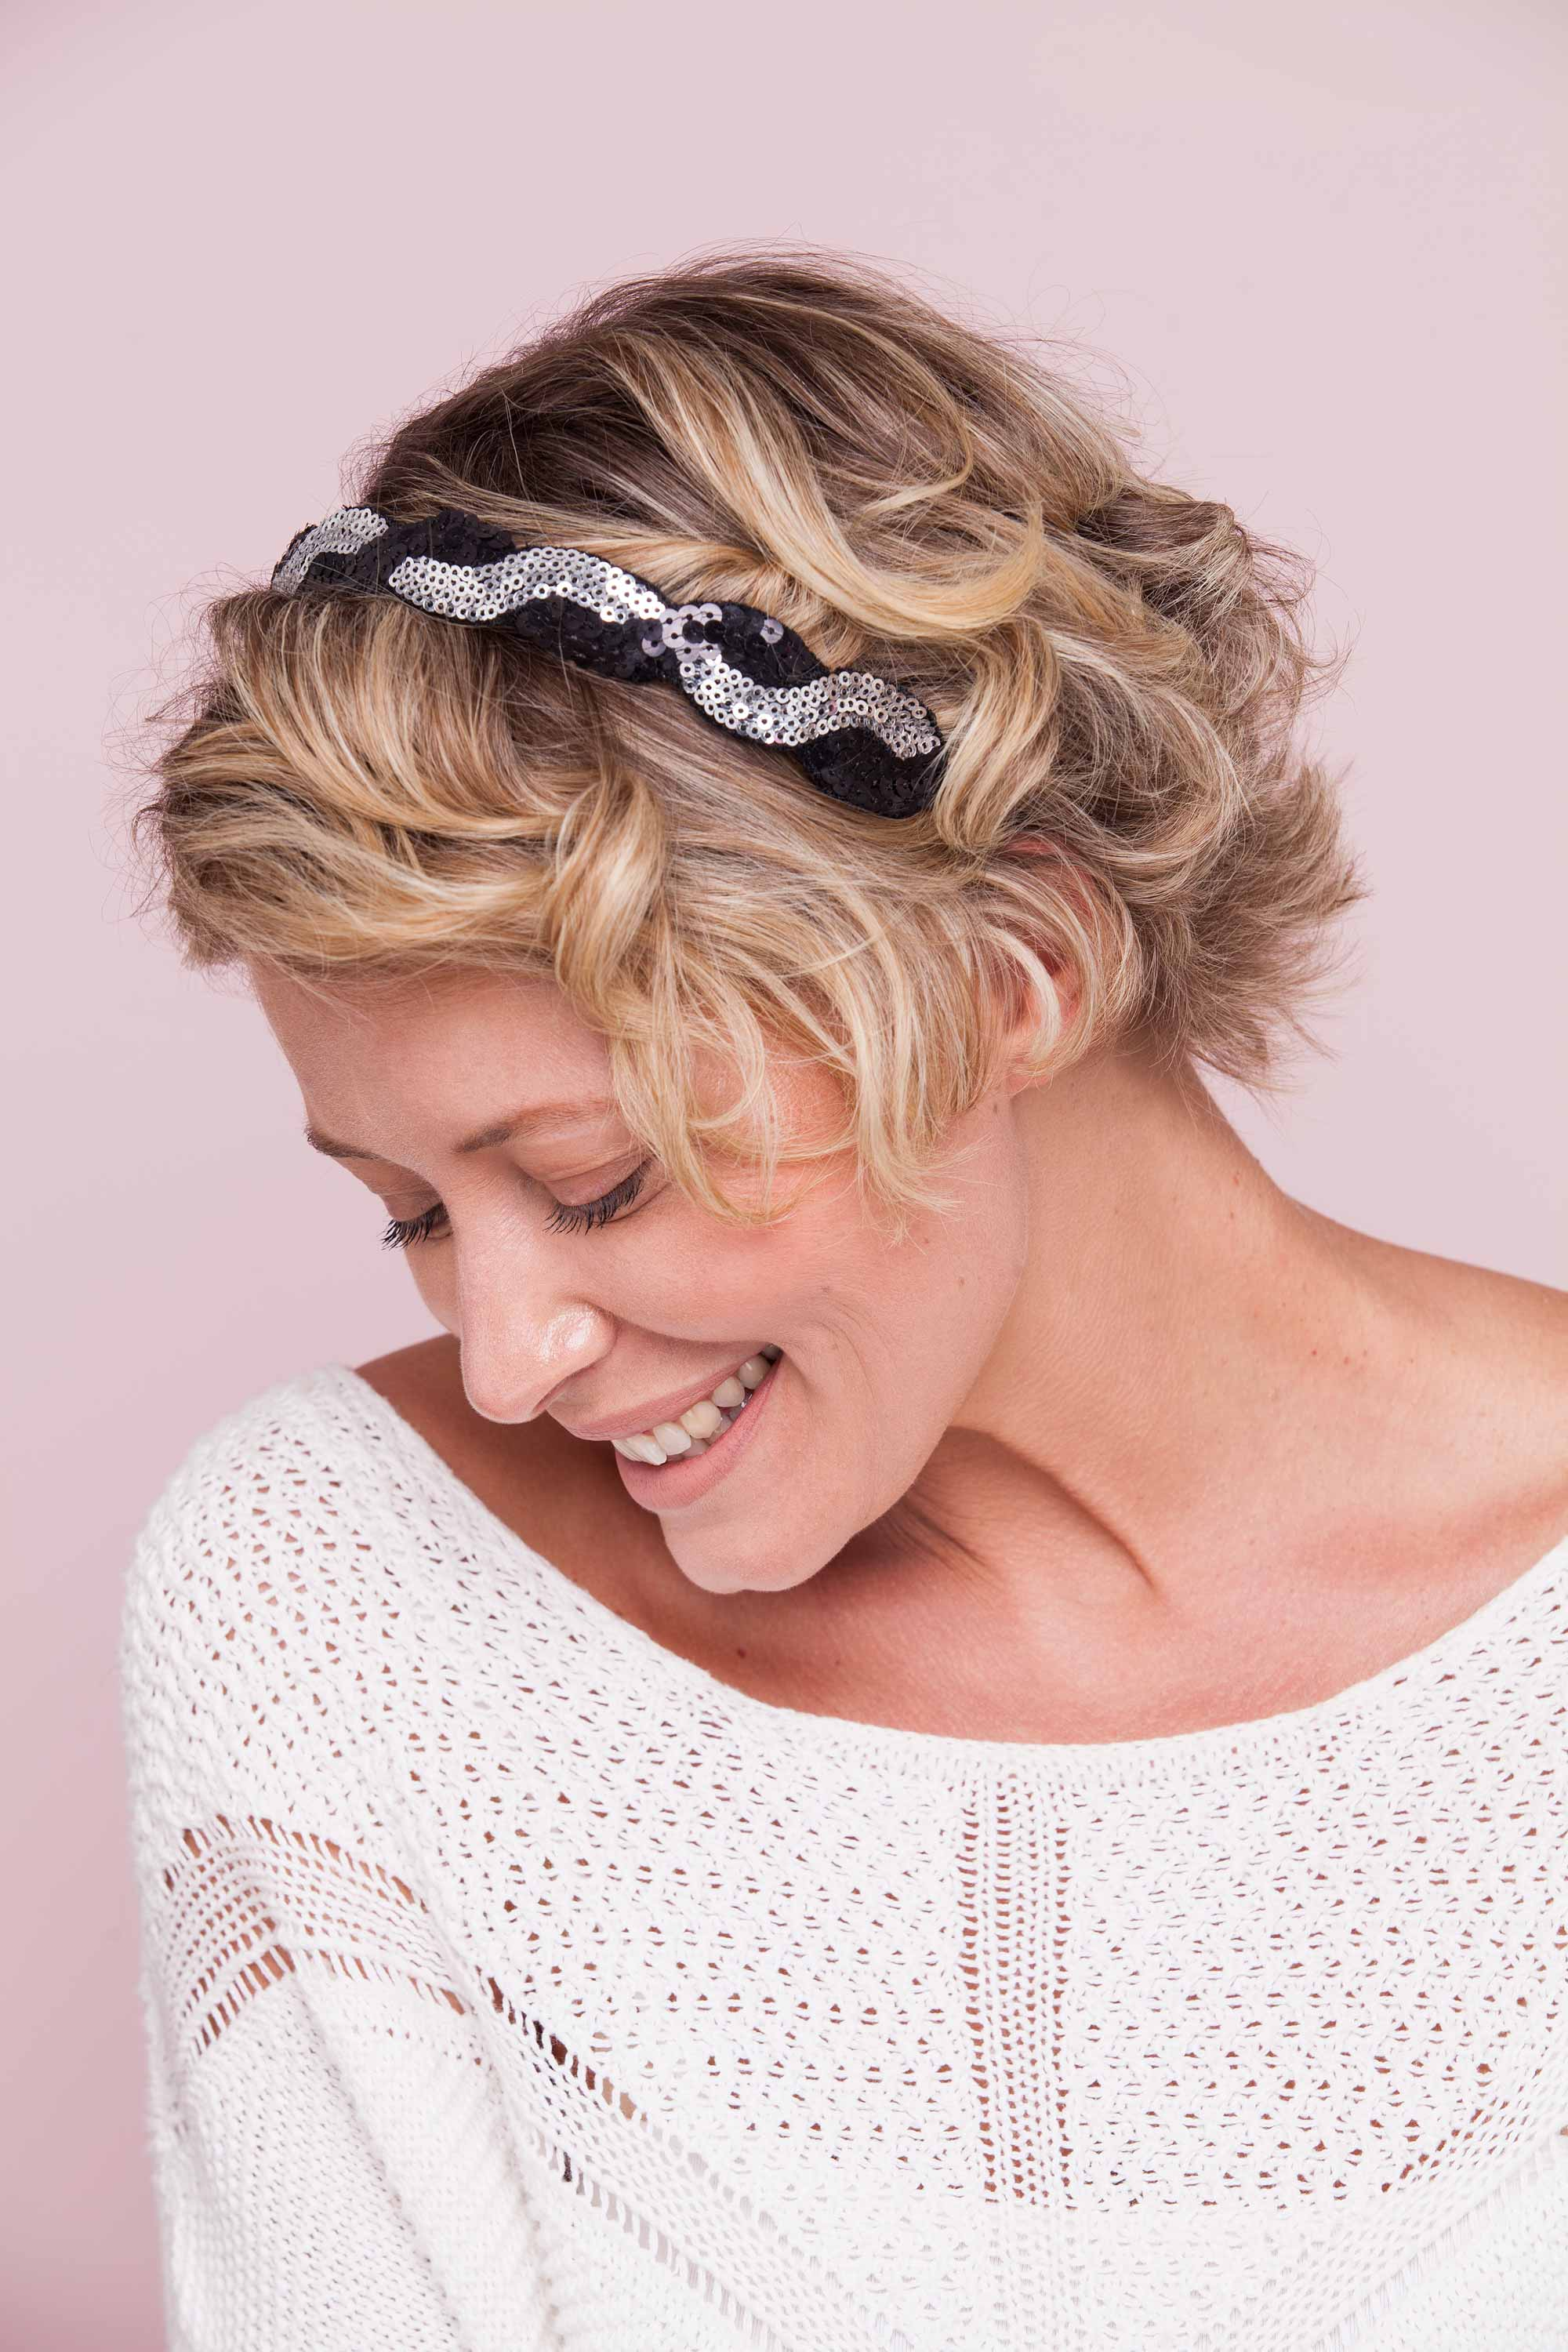 Short summer hairstyles - curly short blonde bob with headband